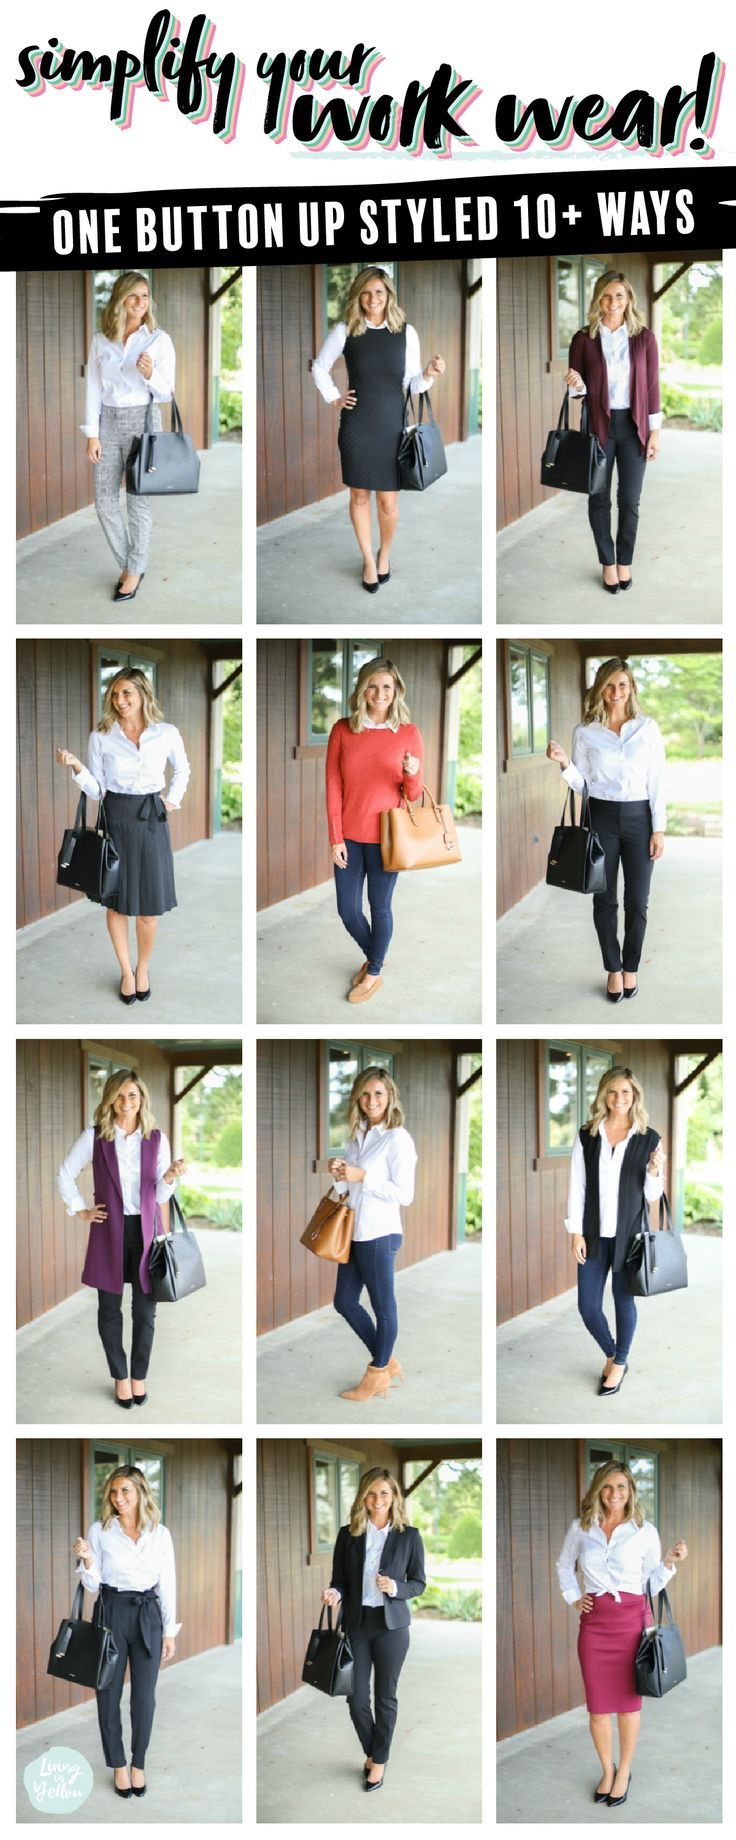 How to Style a Button Up for Work // 1 Shirt, 10+ Ways Macy's #macyslove #ad #ad…